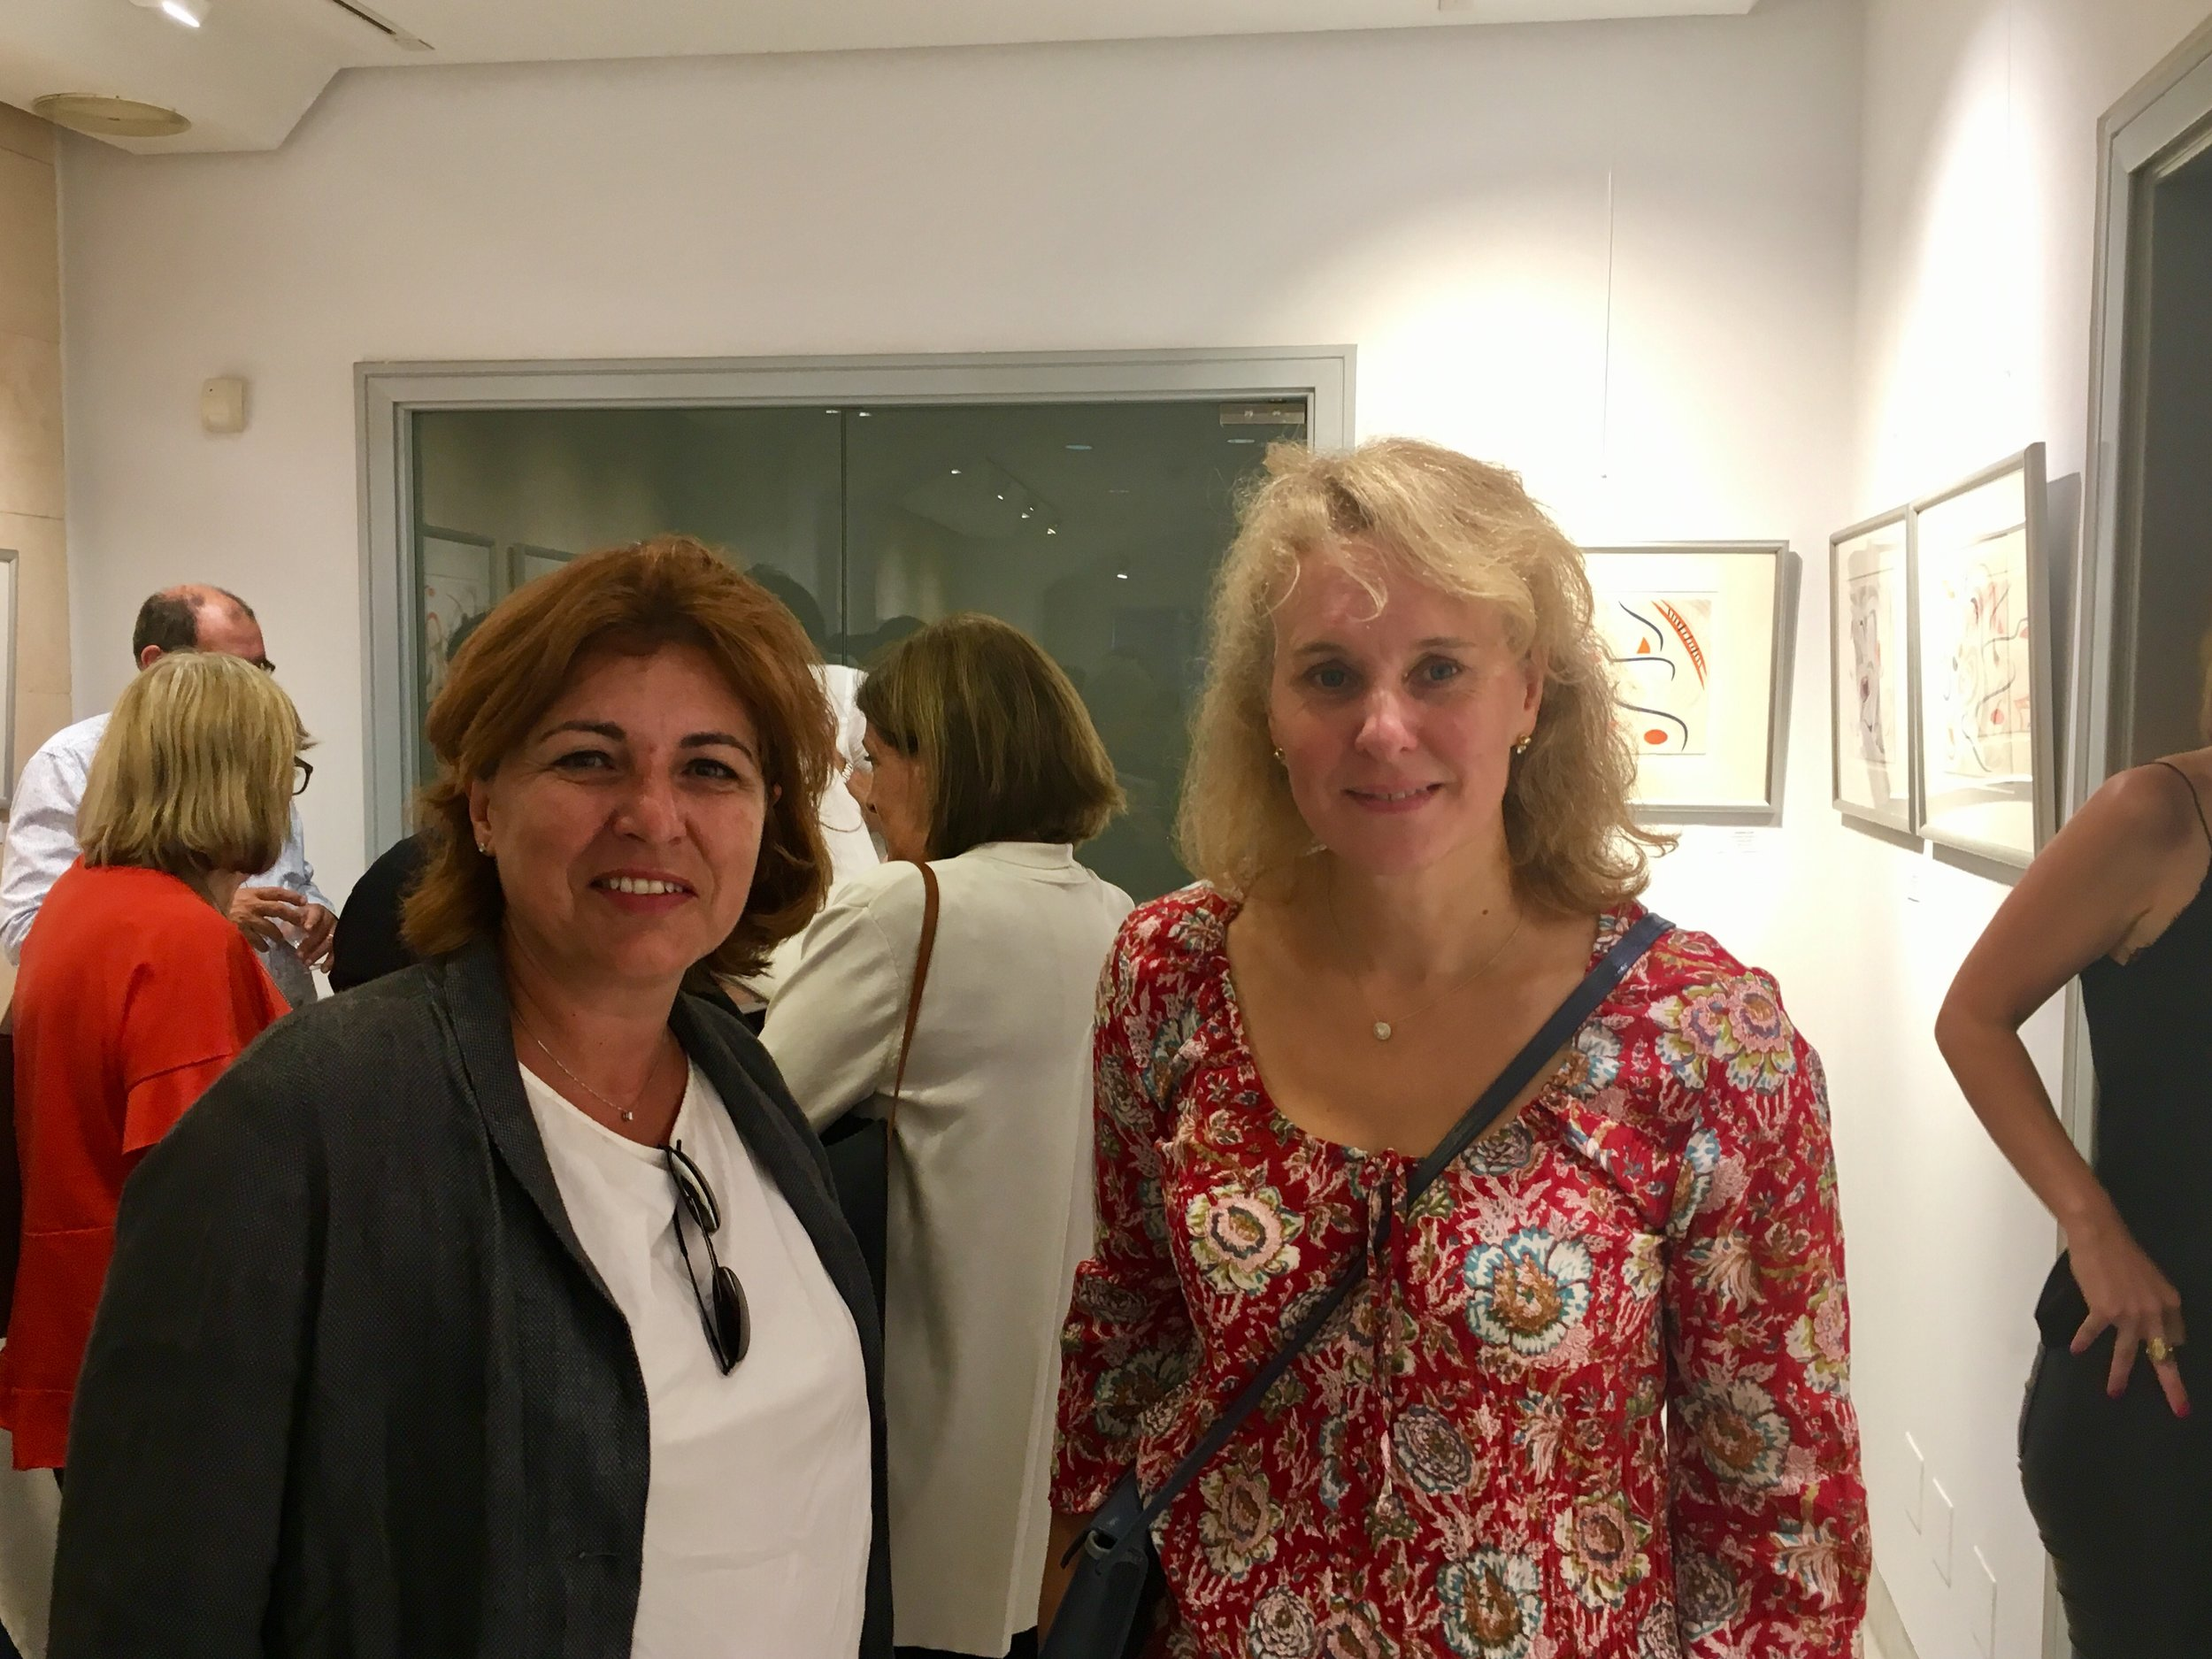 """l to r, Cati Fiol Ferrer, president of Catikät,(featuring handmade Mallorcan products), and Emma Ellis, author of a recent non-fiction best-seller, """"Resolution"""" ."""